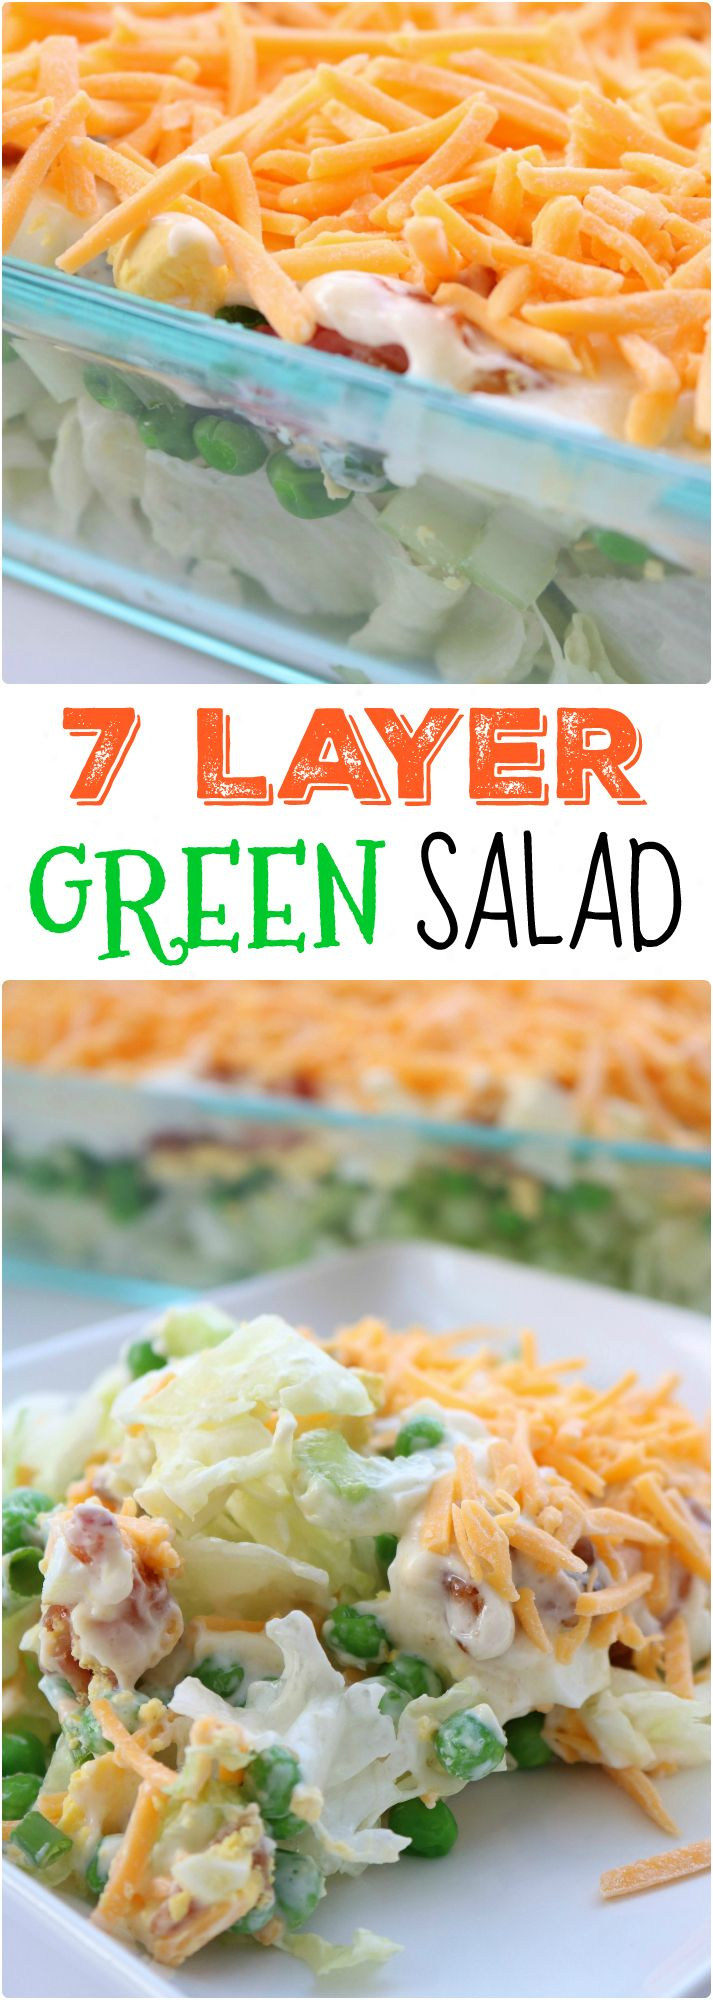 Super easy 7-Layer Salad with Iceberg lettuce, bacon, green onion, celery, egg, peas, and cheese. And a homemade dressing.